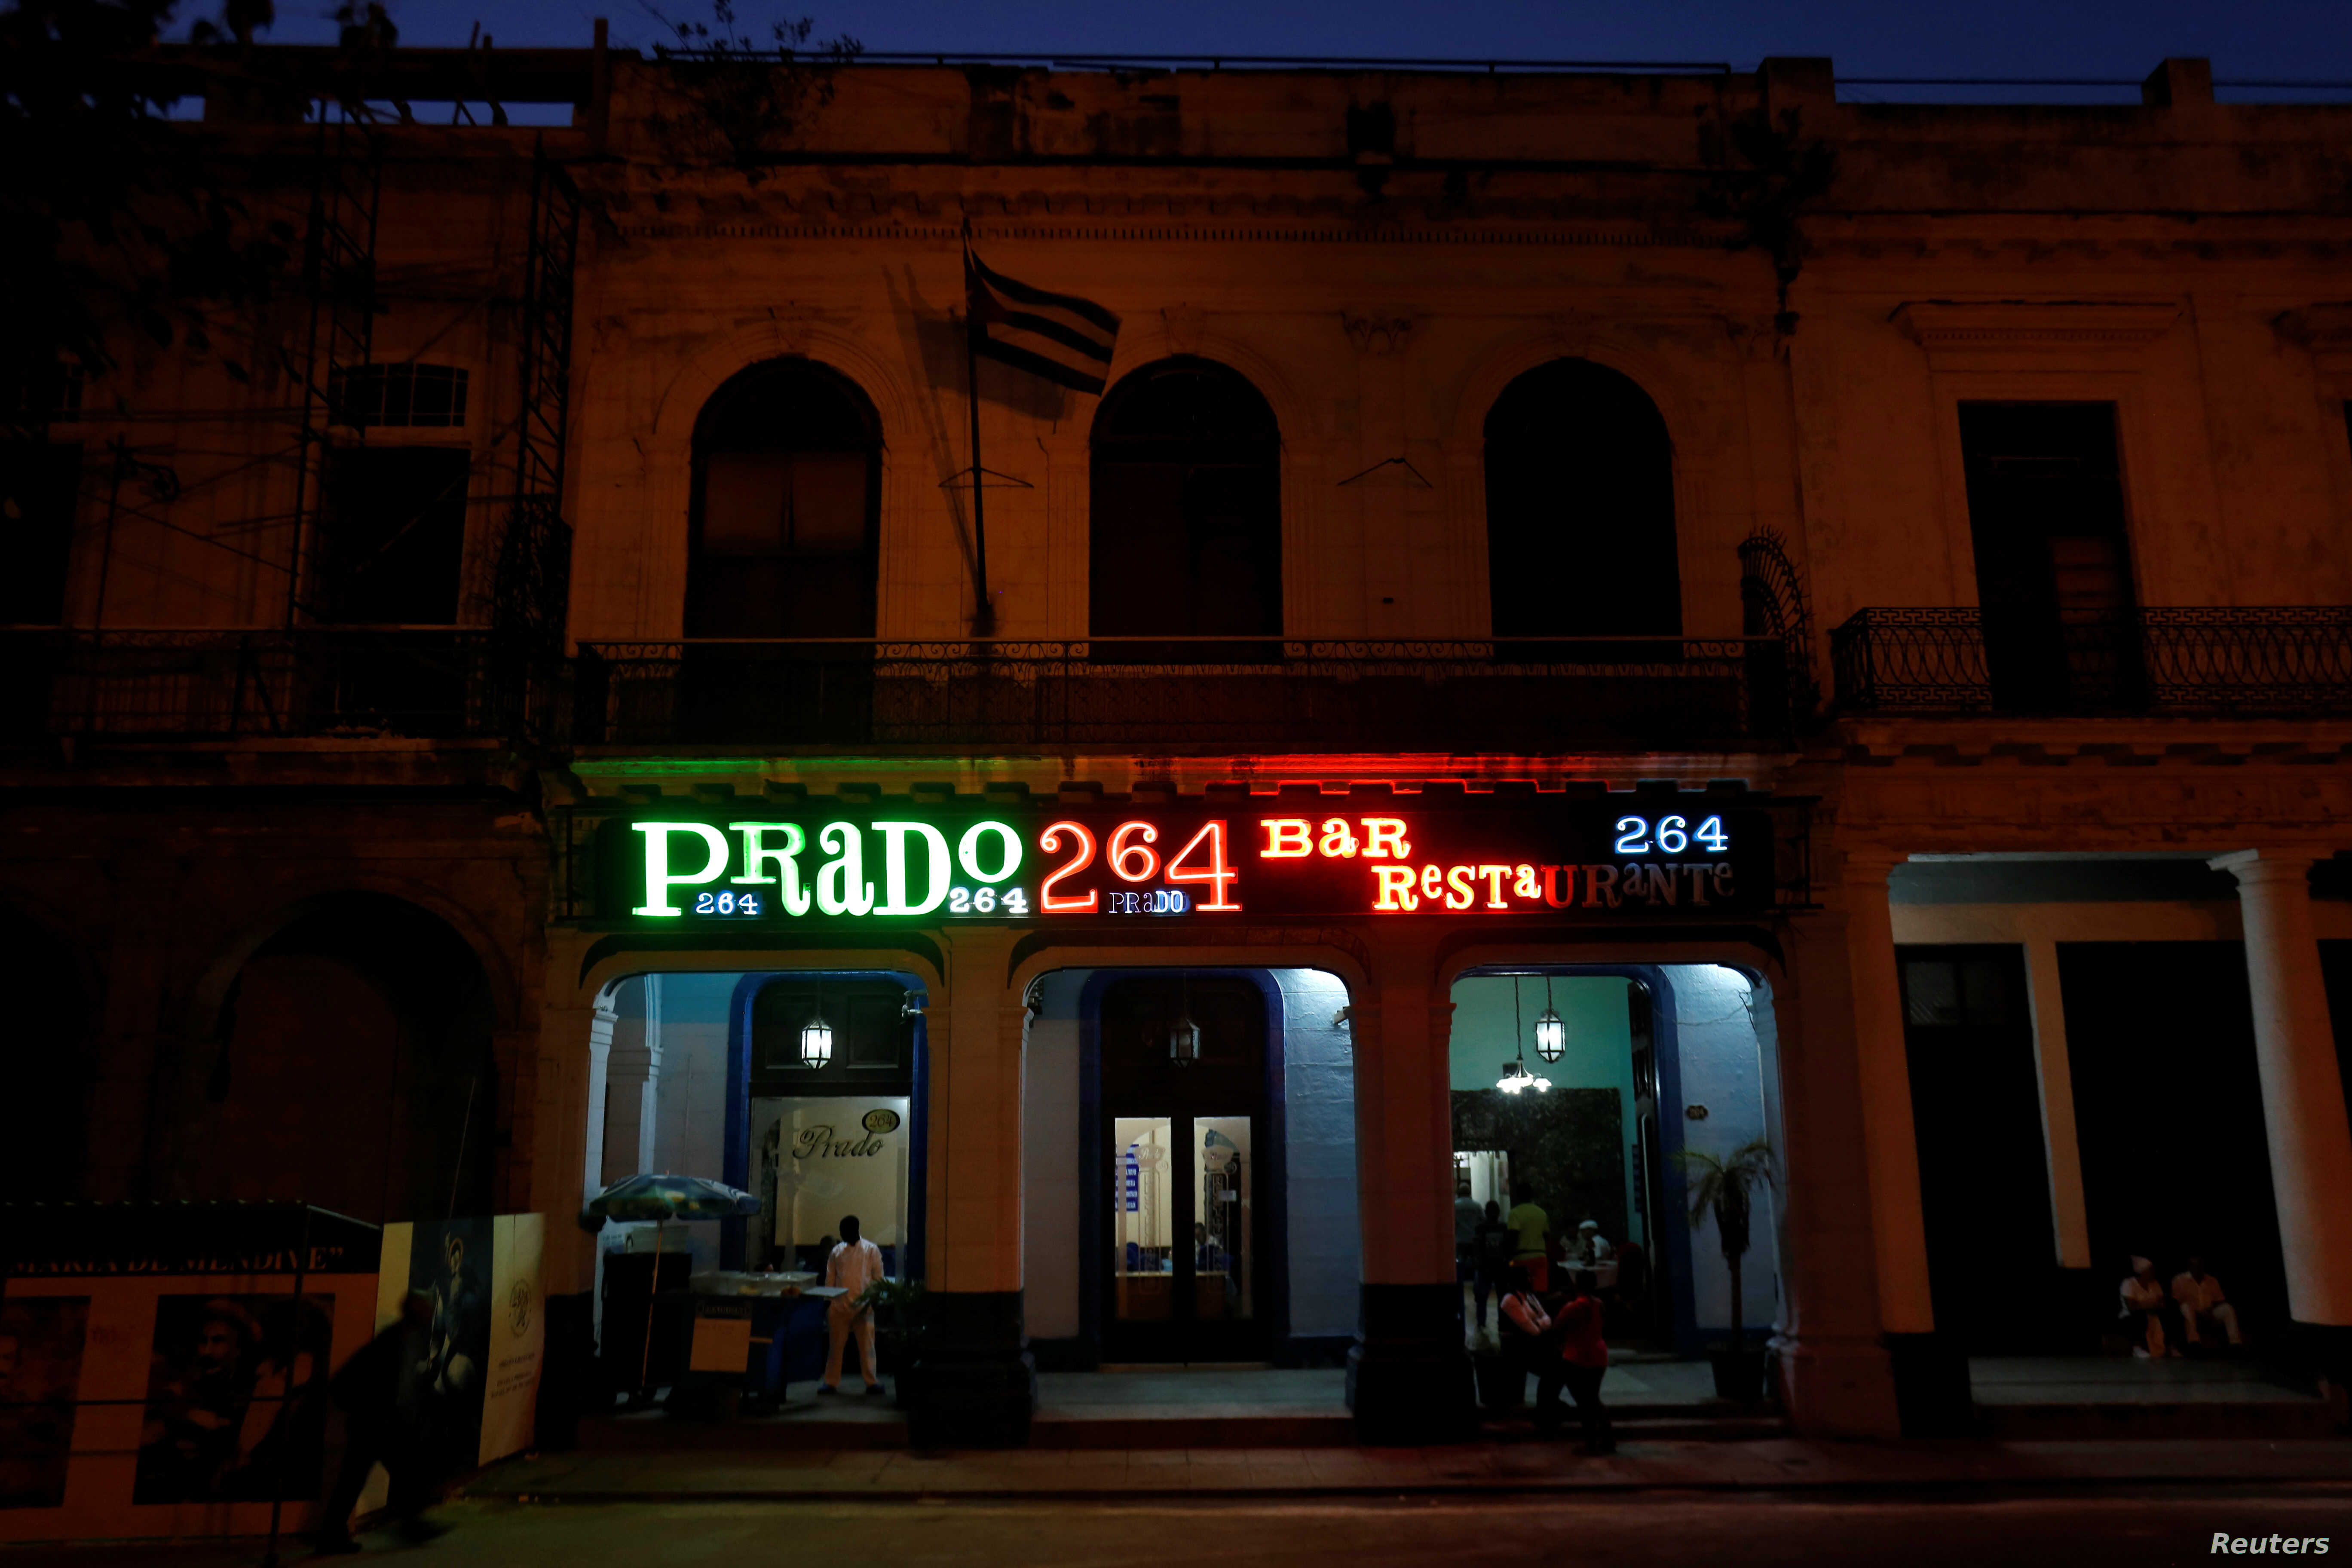 A neon sign shines above the entrance of the restaurant Prado 264, in Havana, Cuba, Feb. 15, 2018.